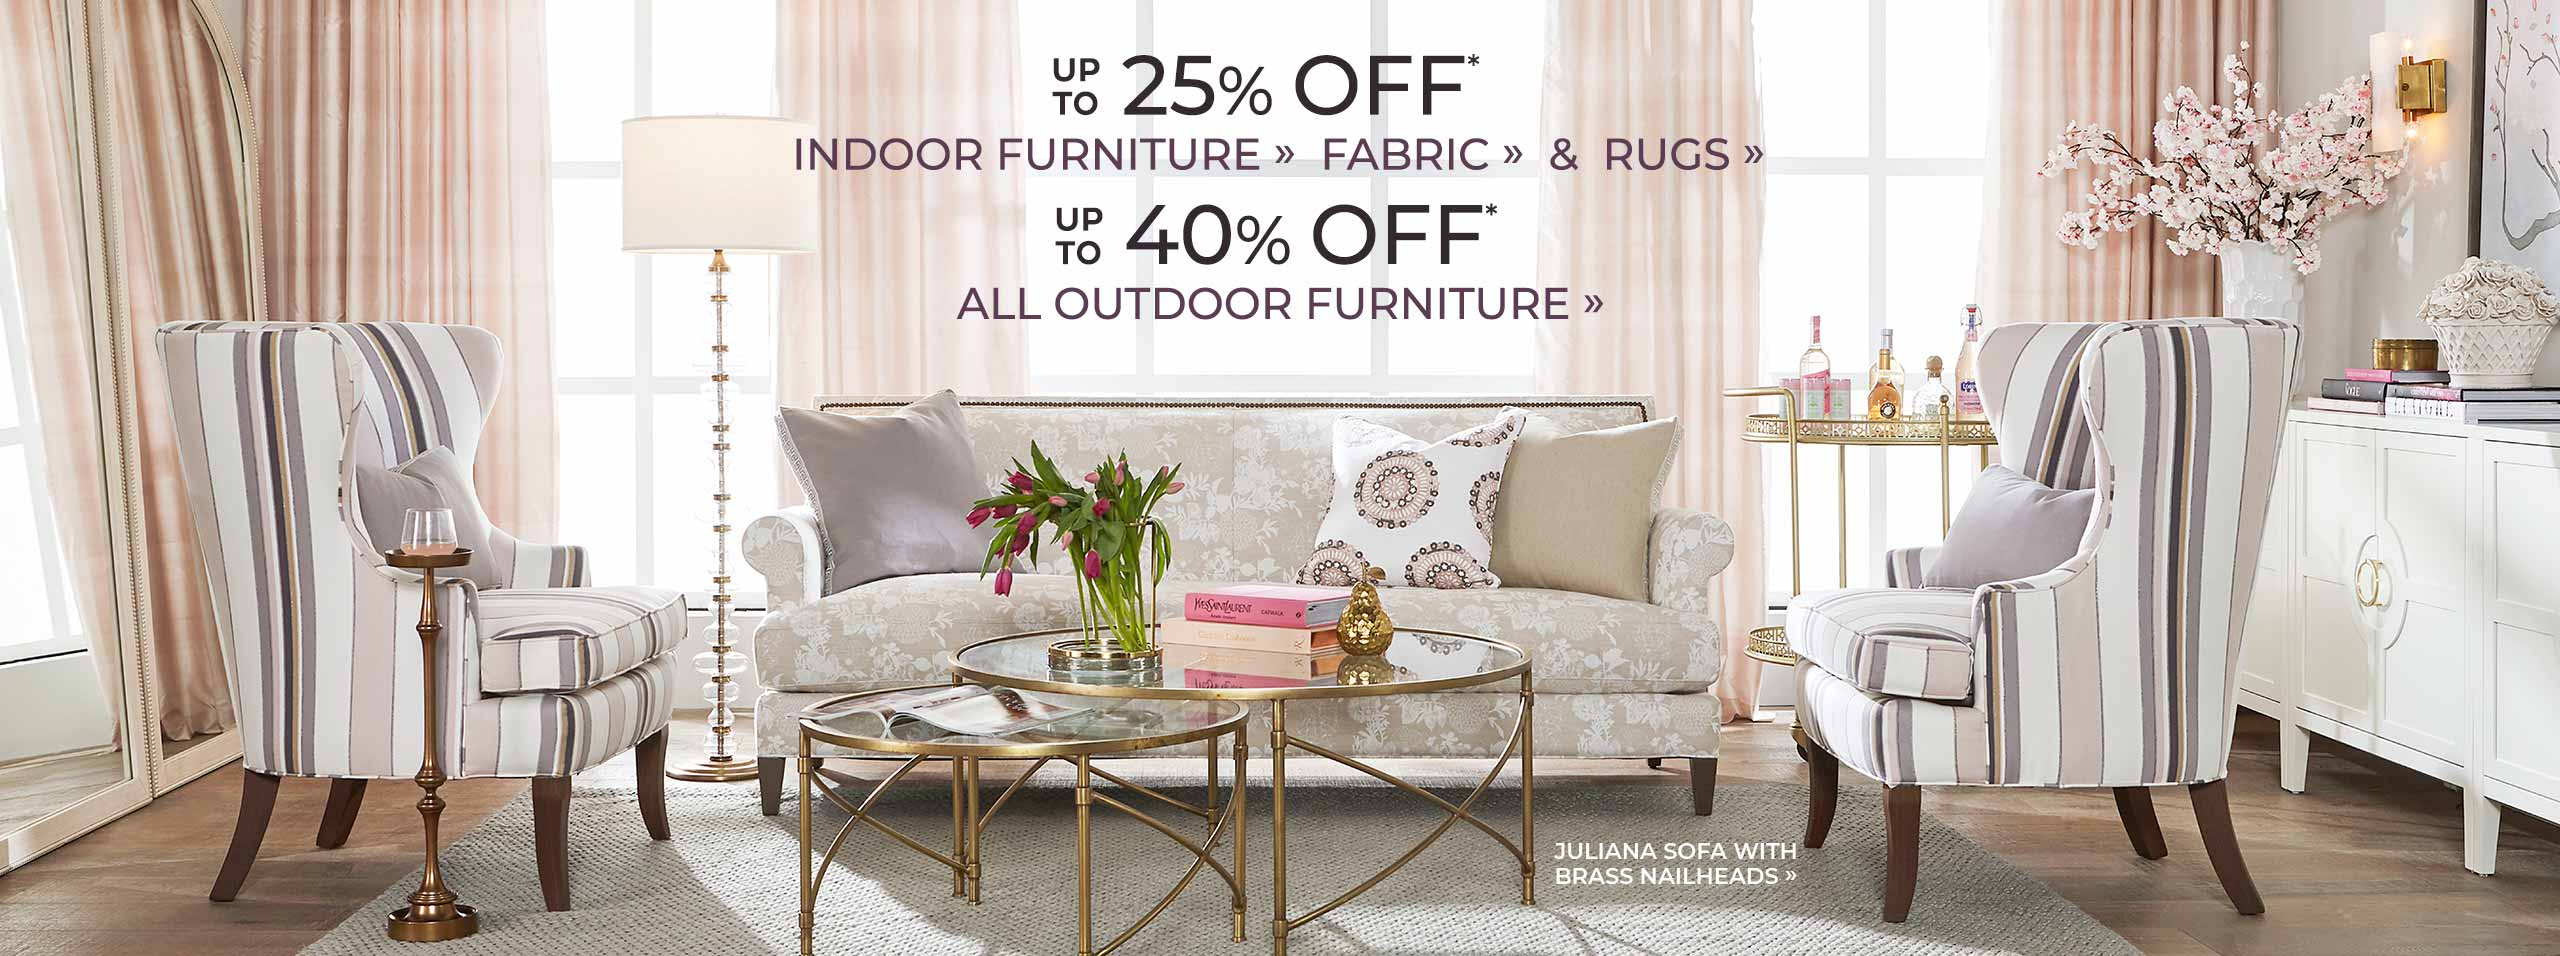 Up to 25% Off Indoor Furniture, Fabric & Rugs* | Up to 40% Off Outdoor Furniture* | Ballard Designs